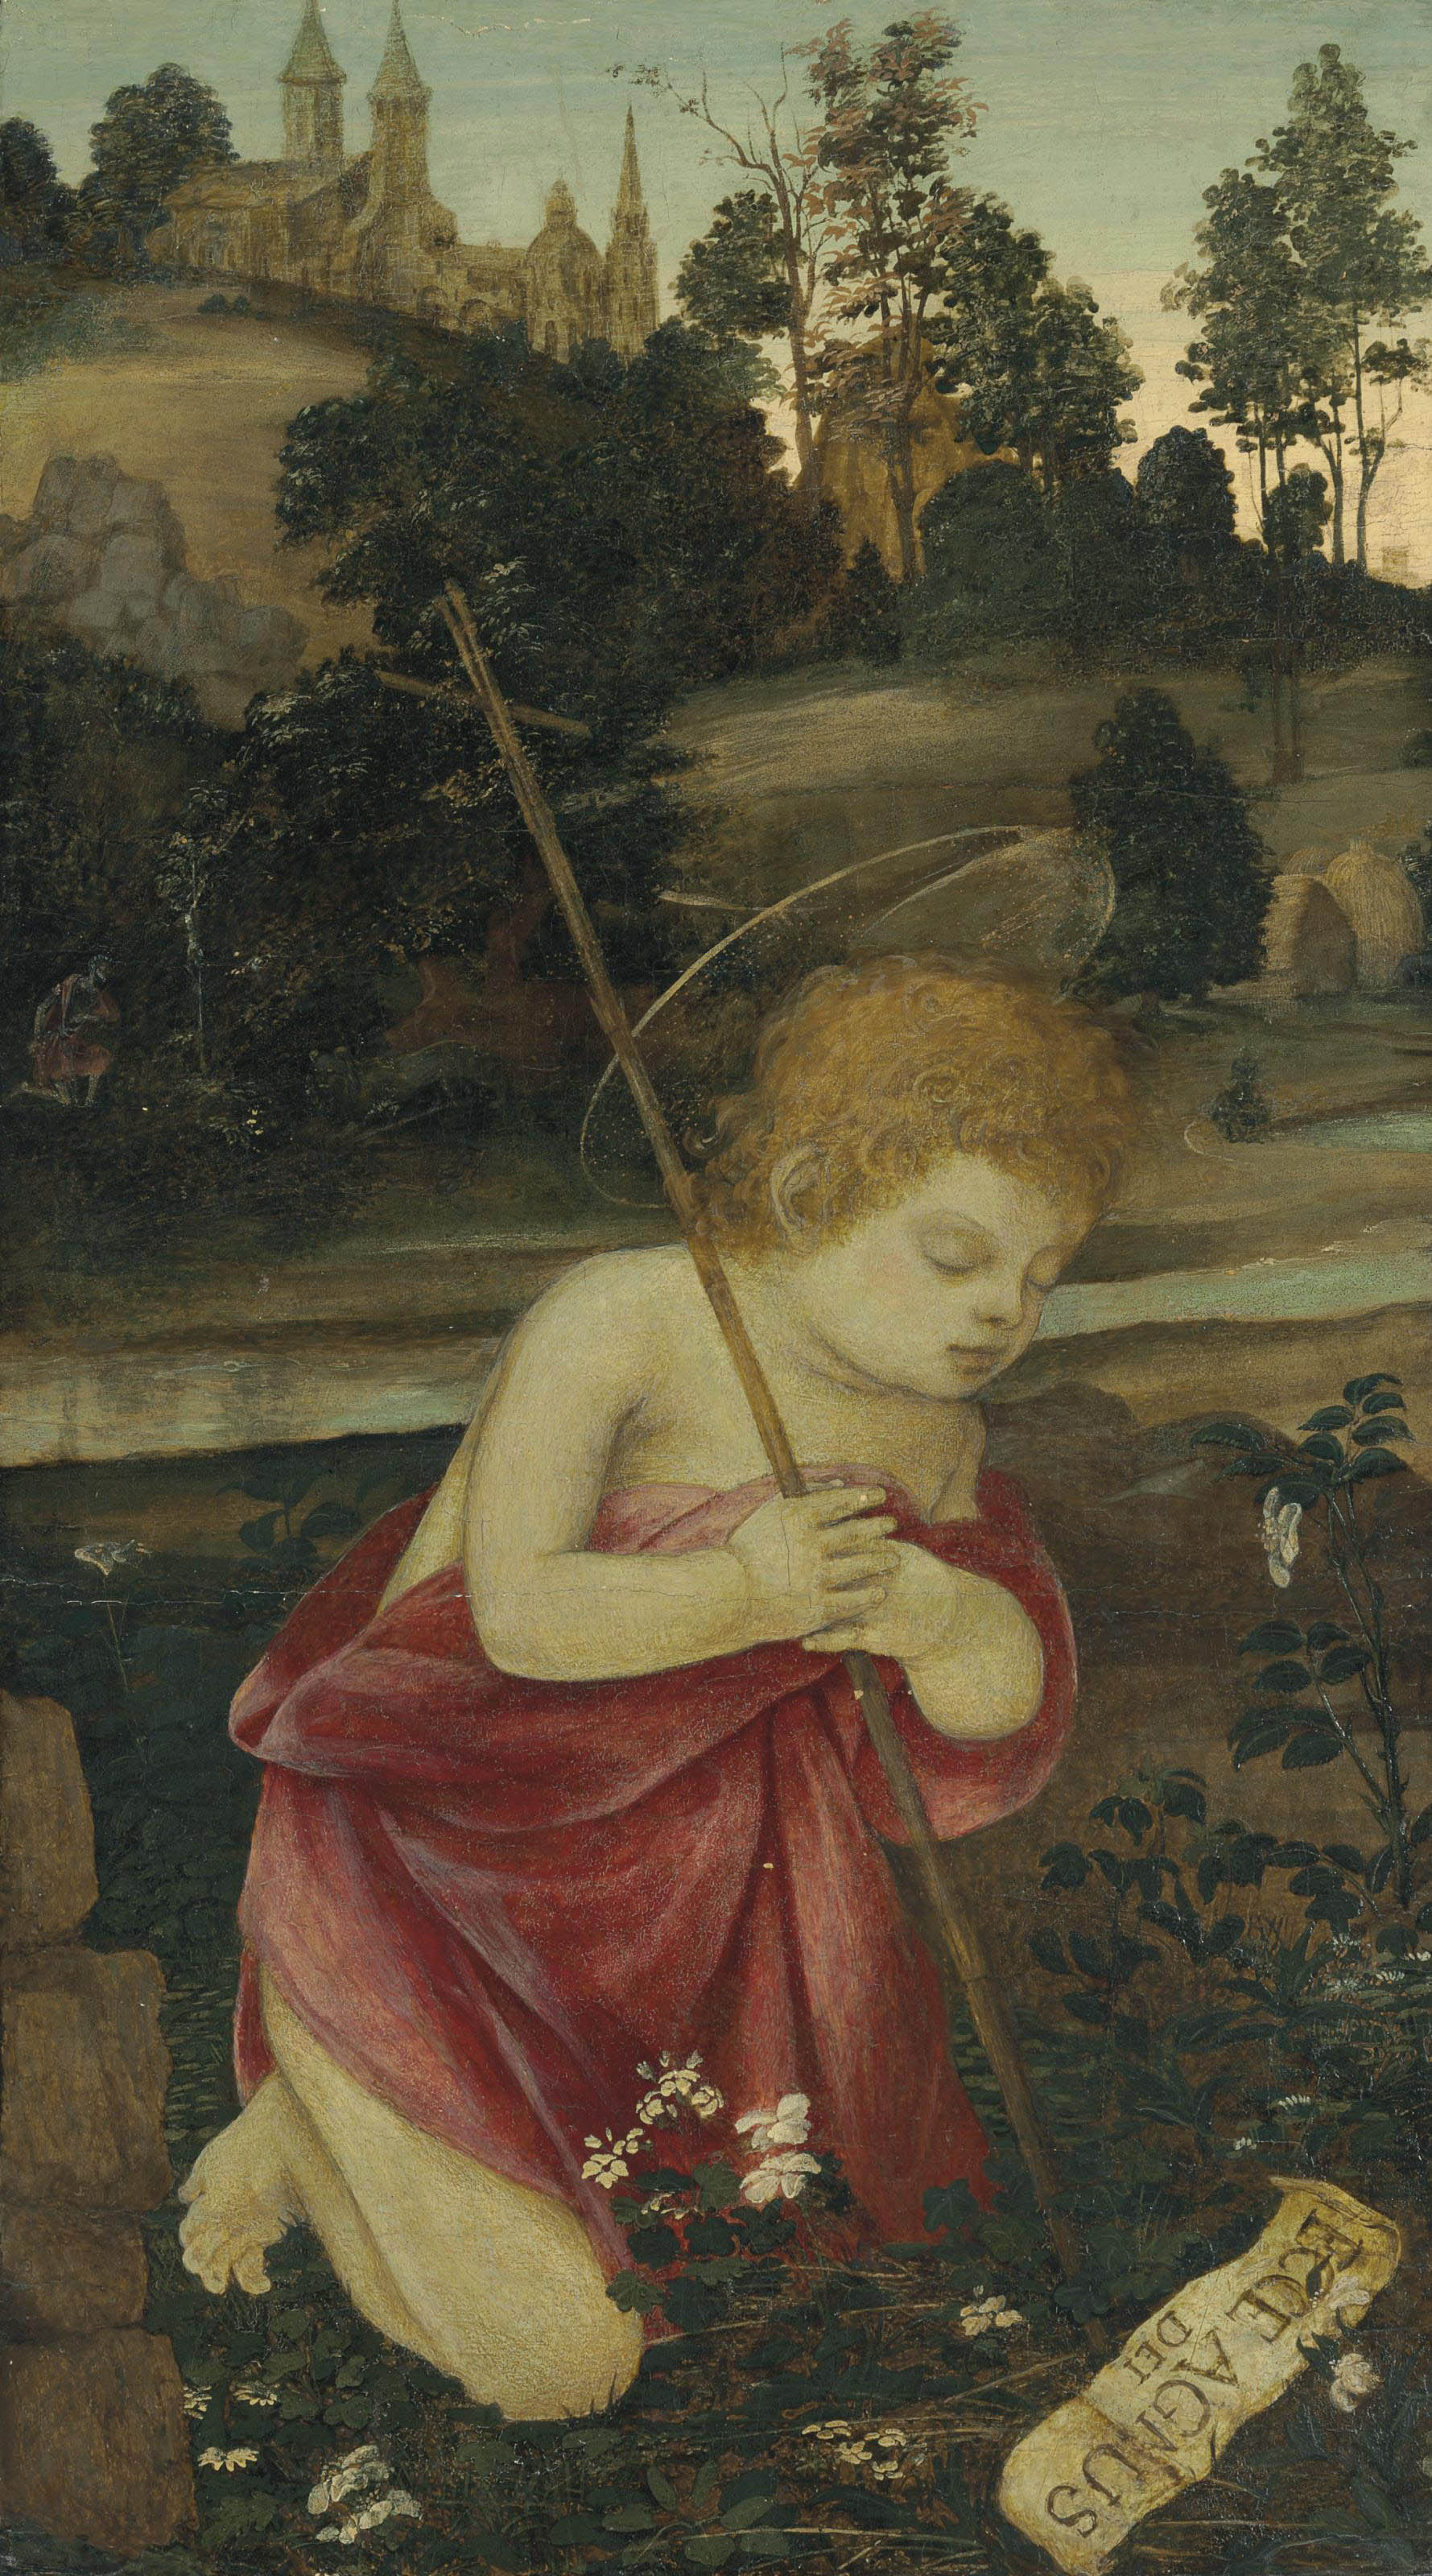 The Young Saint John the Baptist praying in a landscape